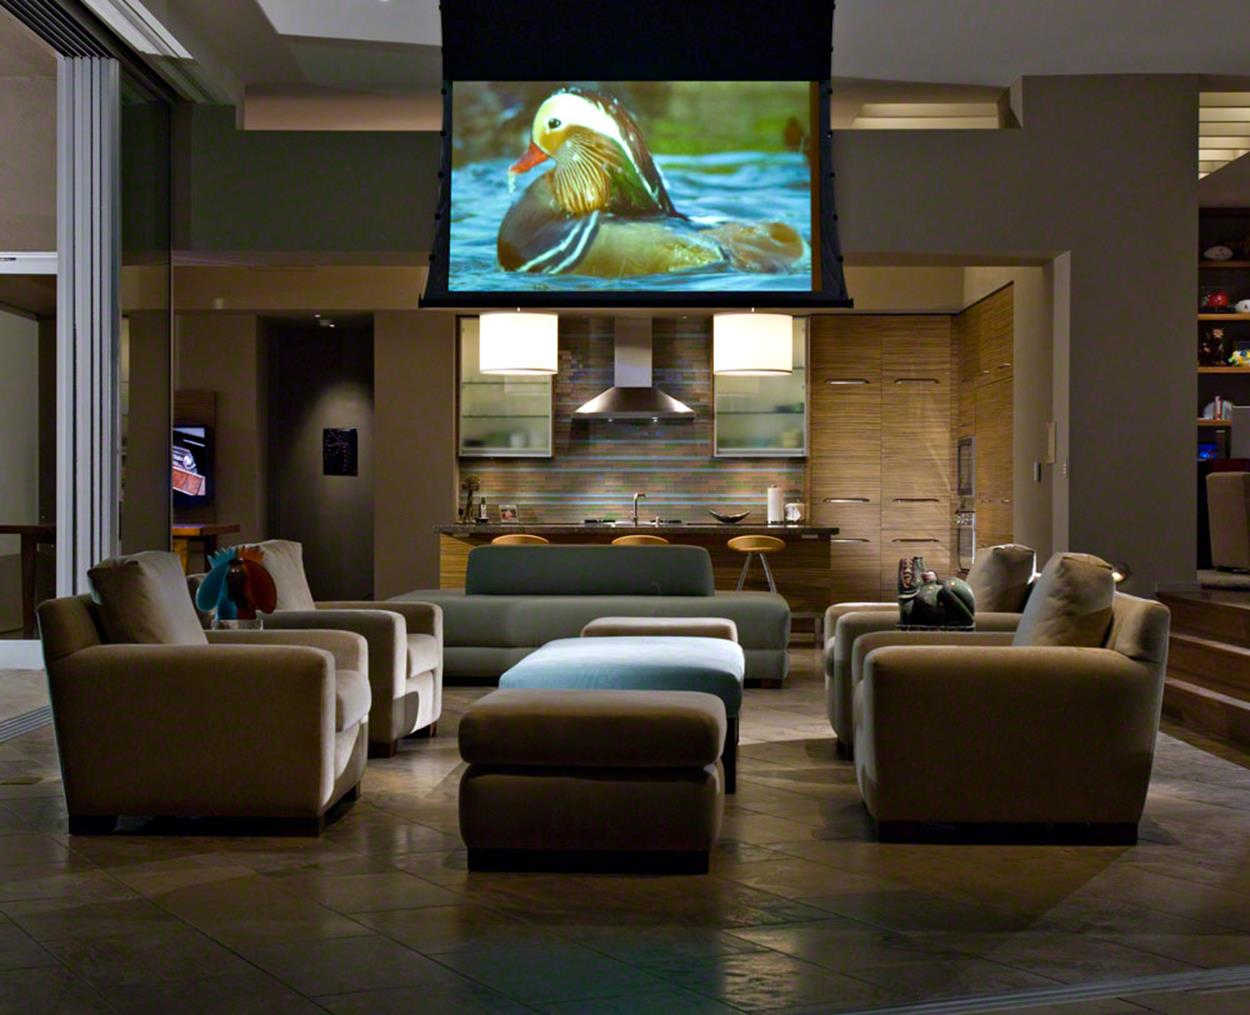 Home Theater Couch Living Room Furniture 16 - DecoRelated